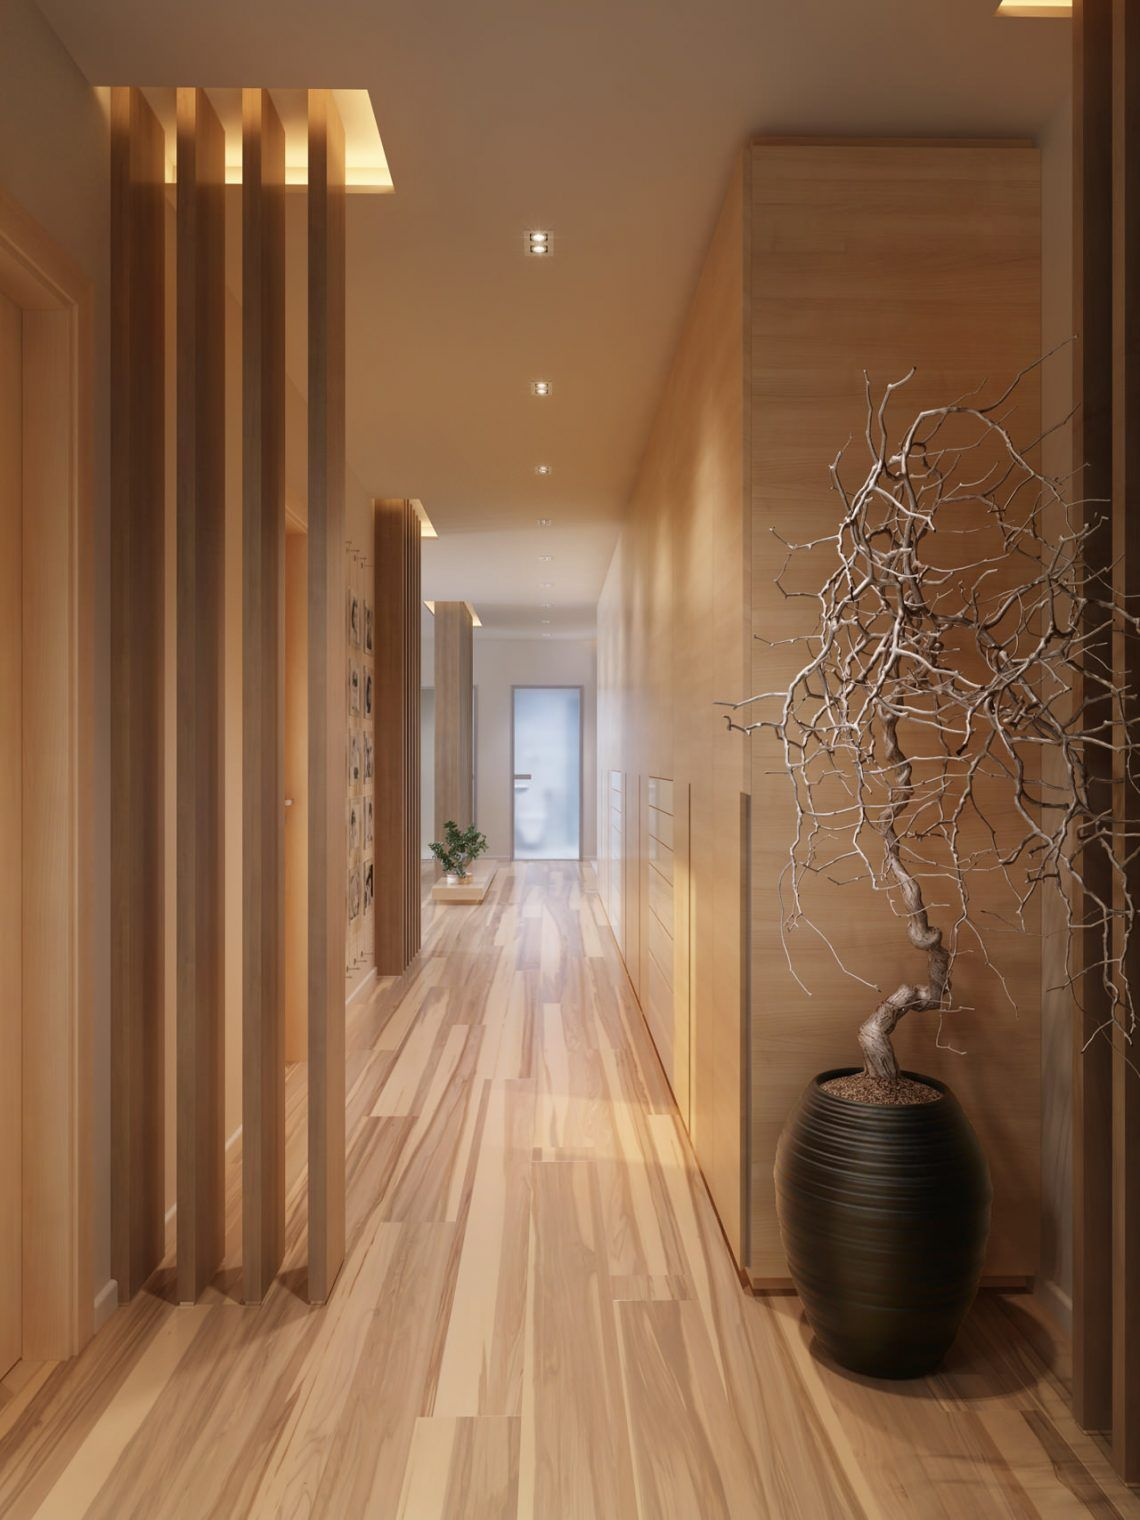 Mr Lalit Sharma S Residence In Kharghar Minimalist Living: Stunning Hallway Designs To Impress Your Guest